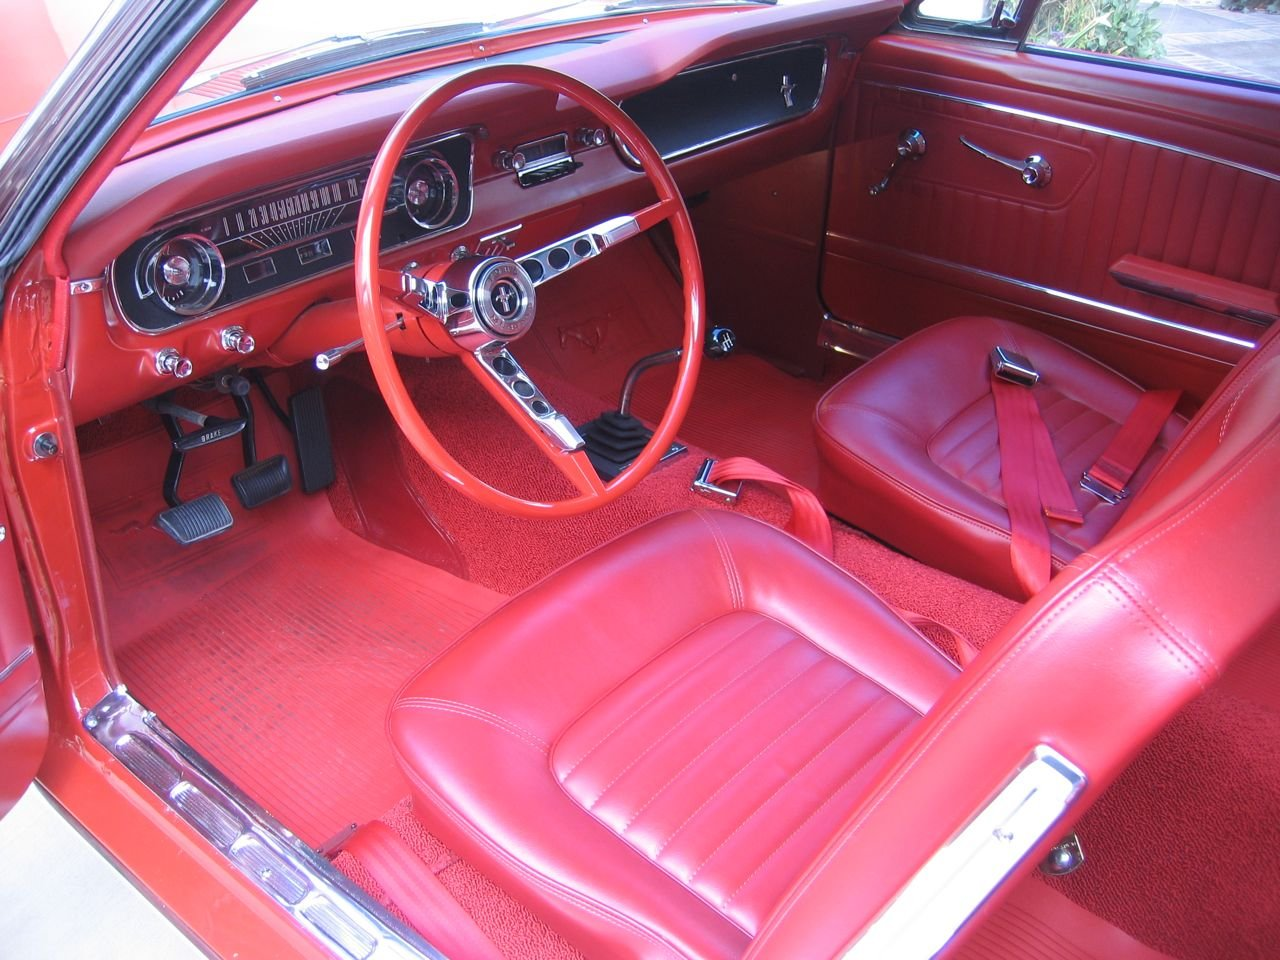 66 Mustang Fastback >> Correct 1966 Mustang Interior - Ford Mustang Forum